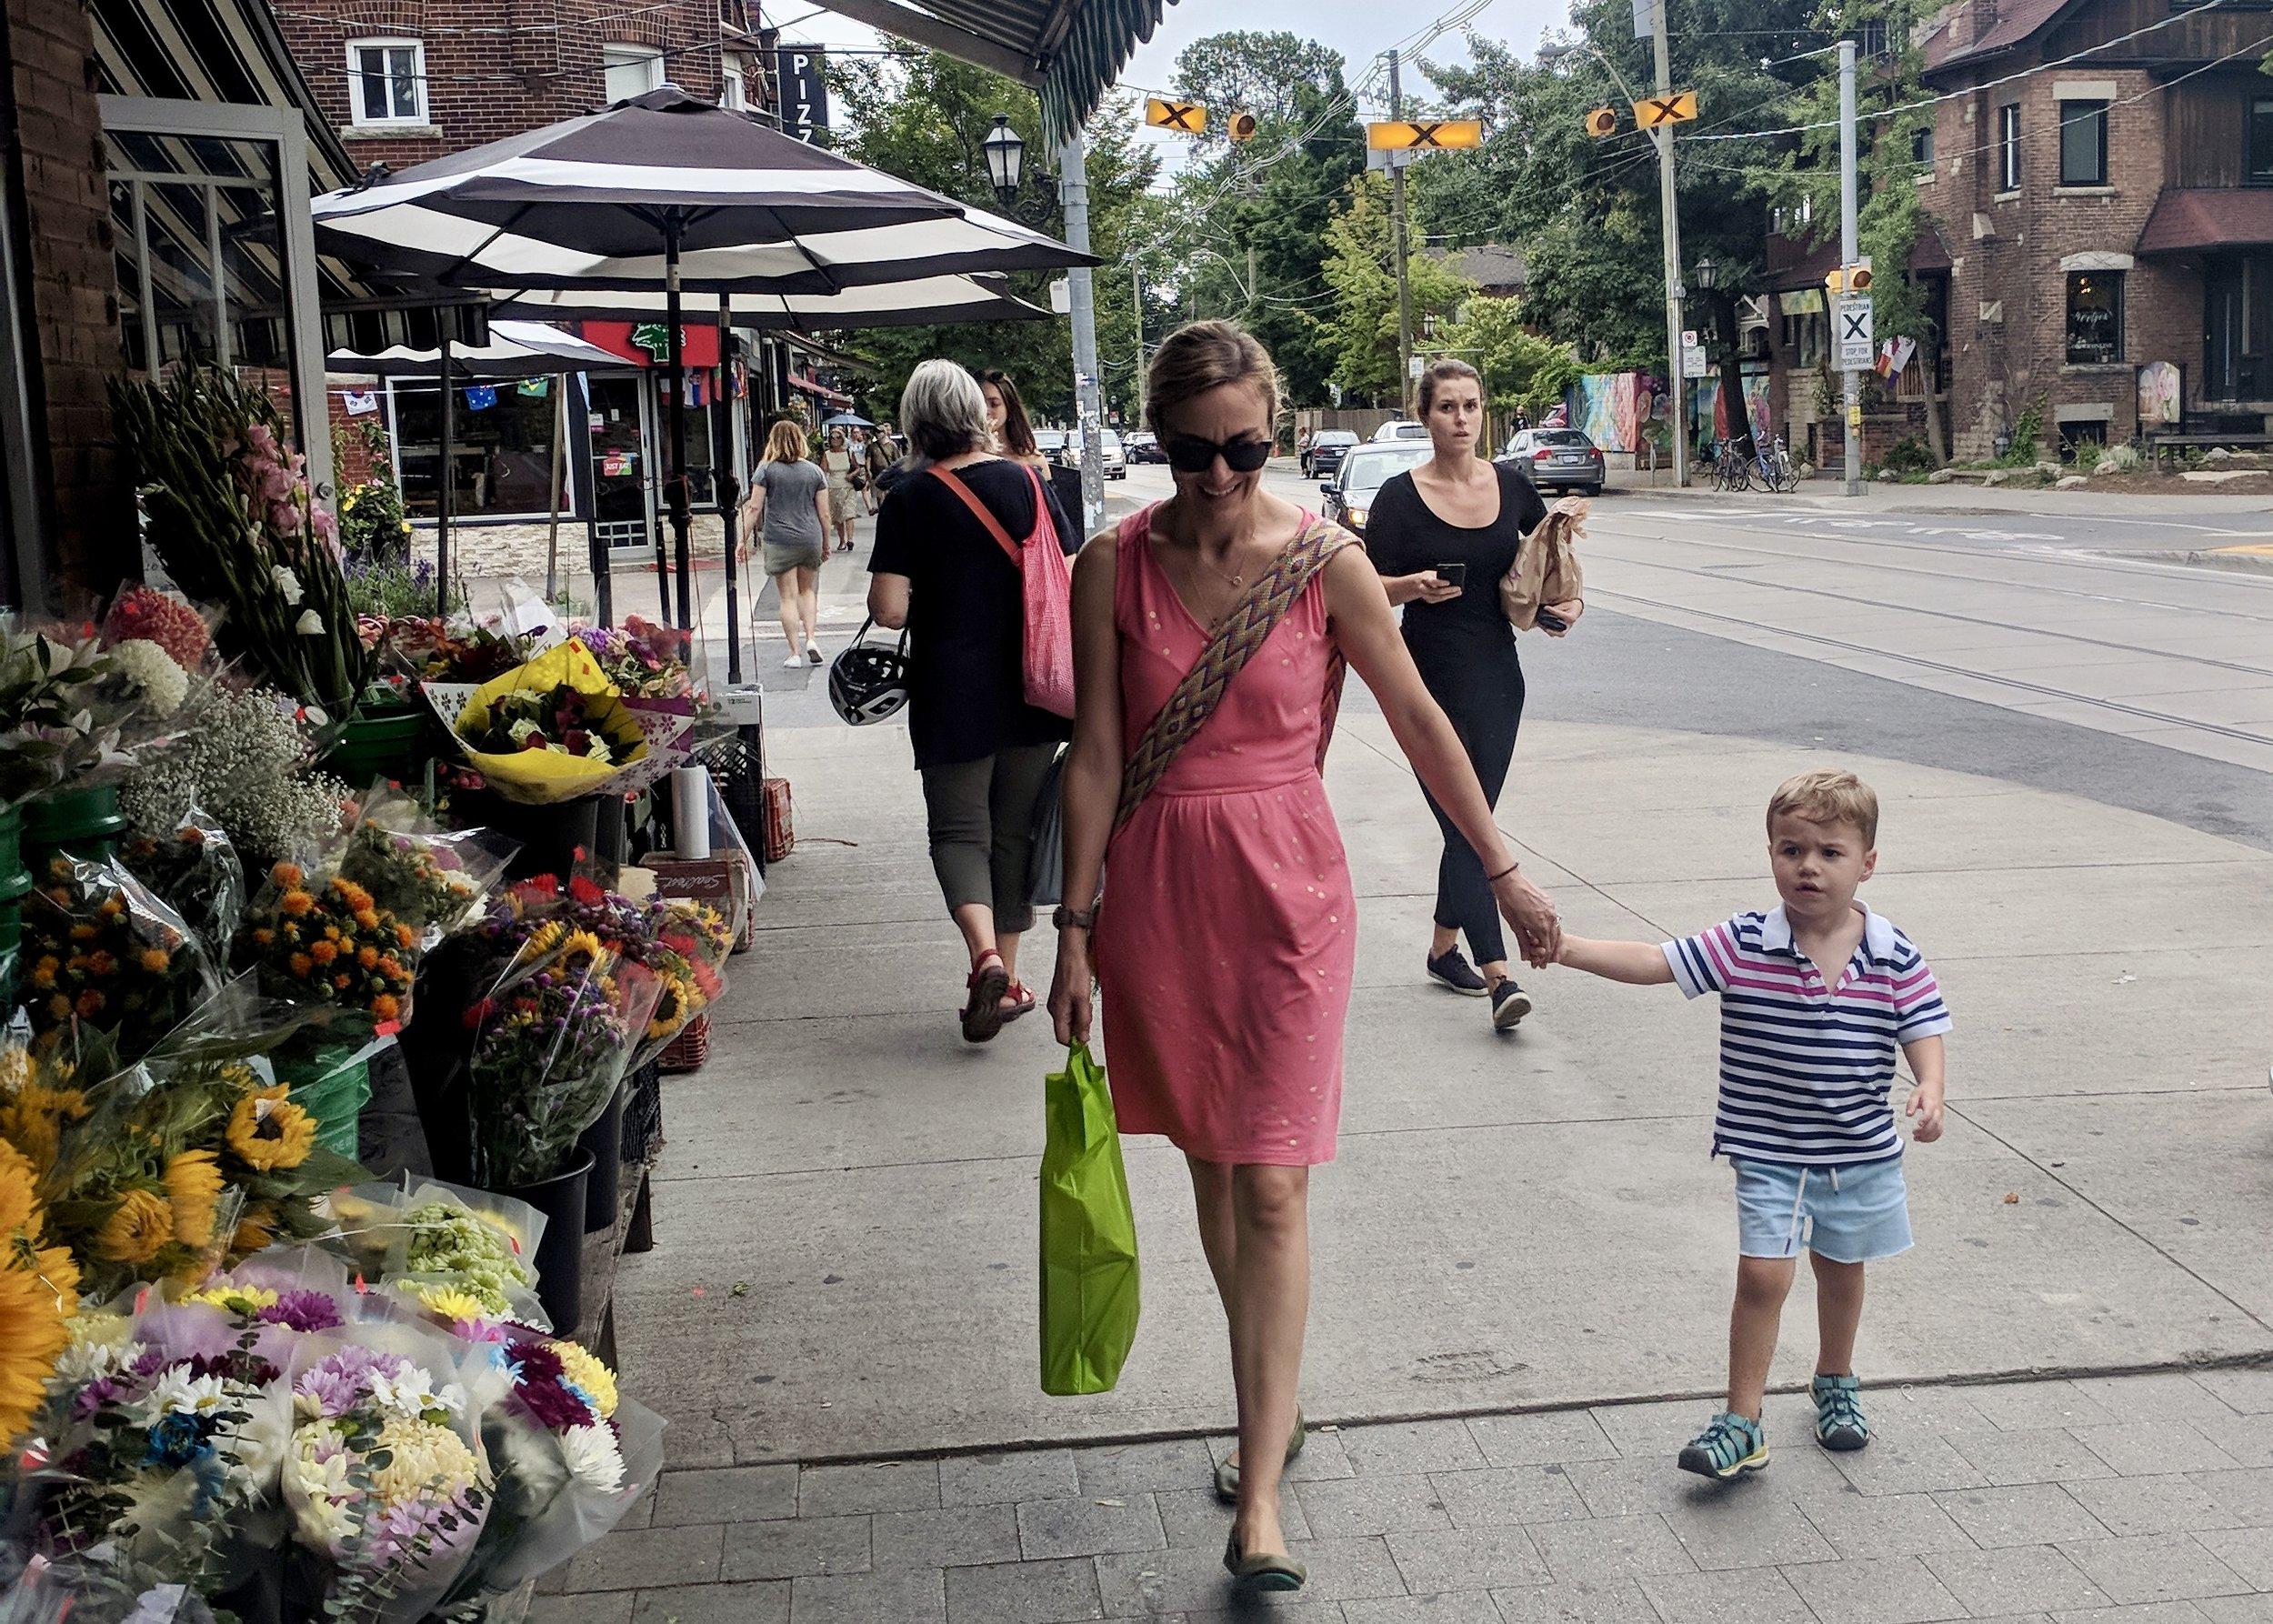 Small Town City : Walking along Roncevalles Avenue in West Toronto.